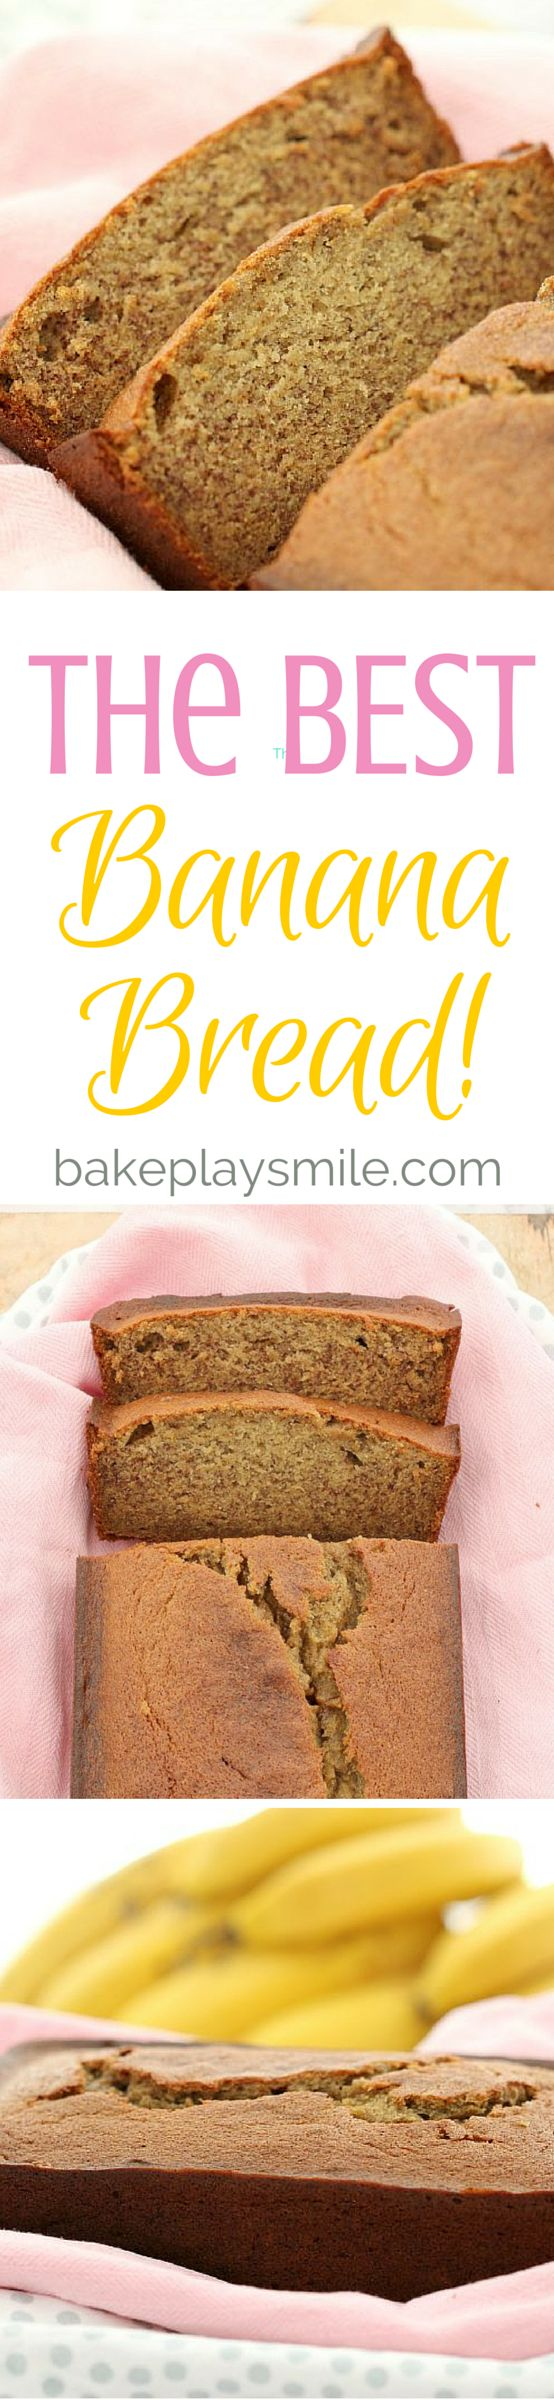 A delicious one-bowl banana bread that is so quick and easy to prepare! Made…